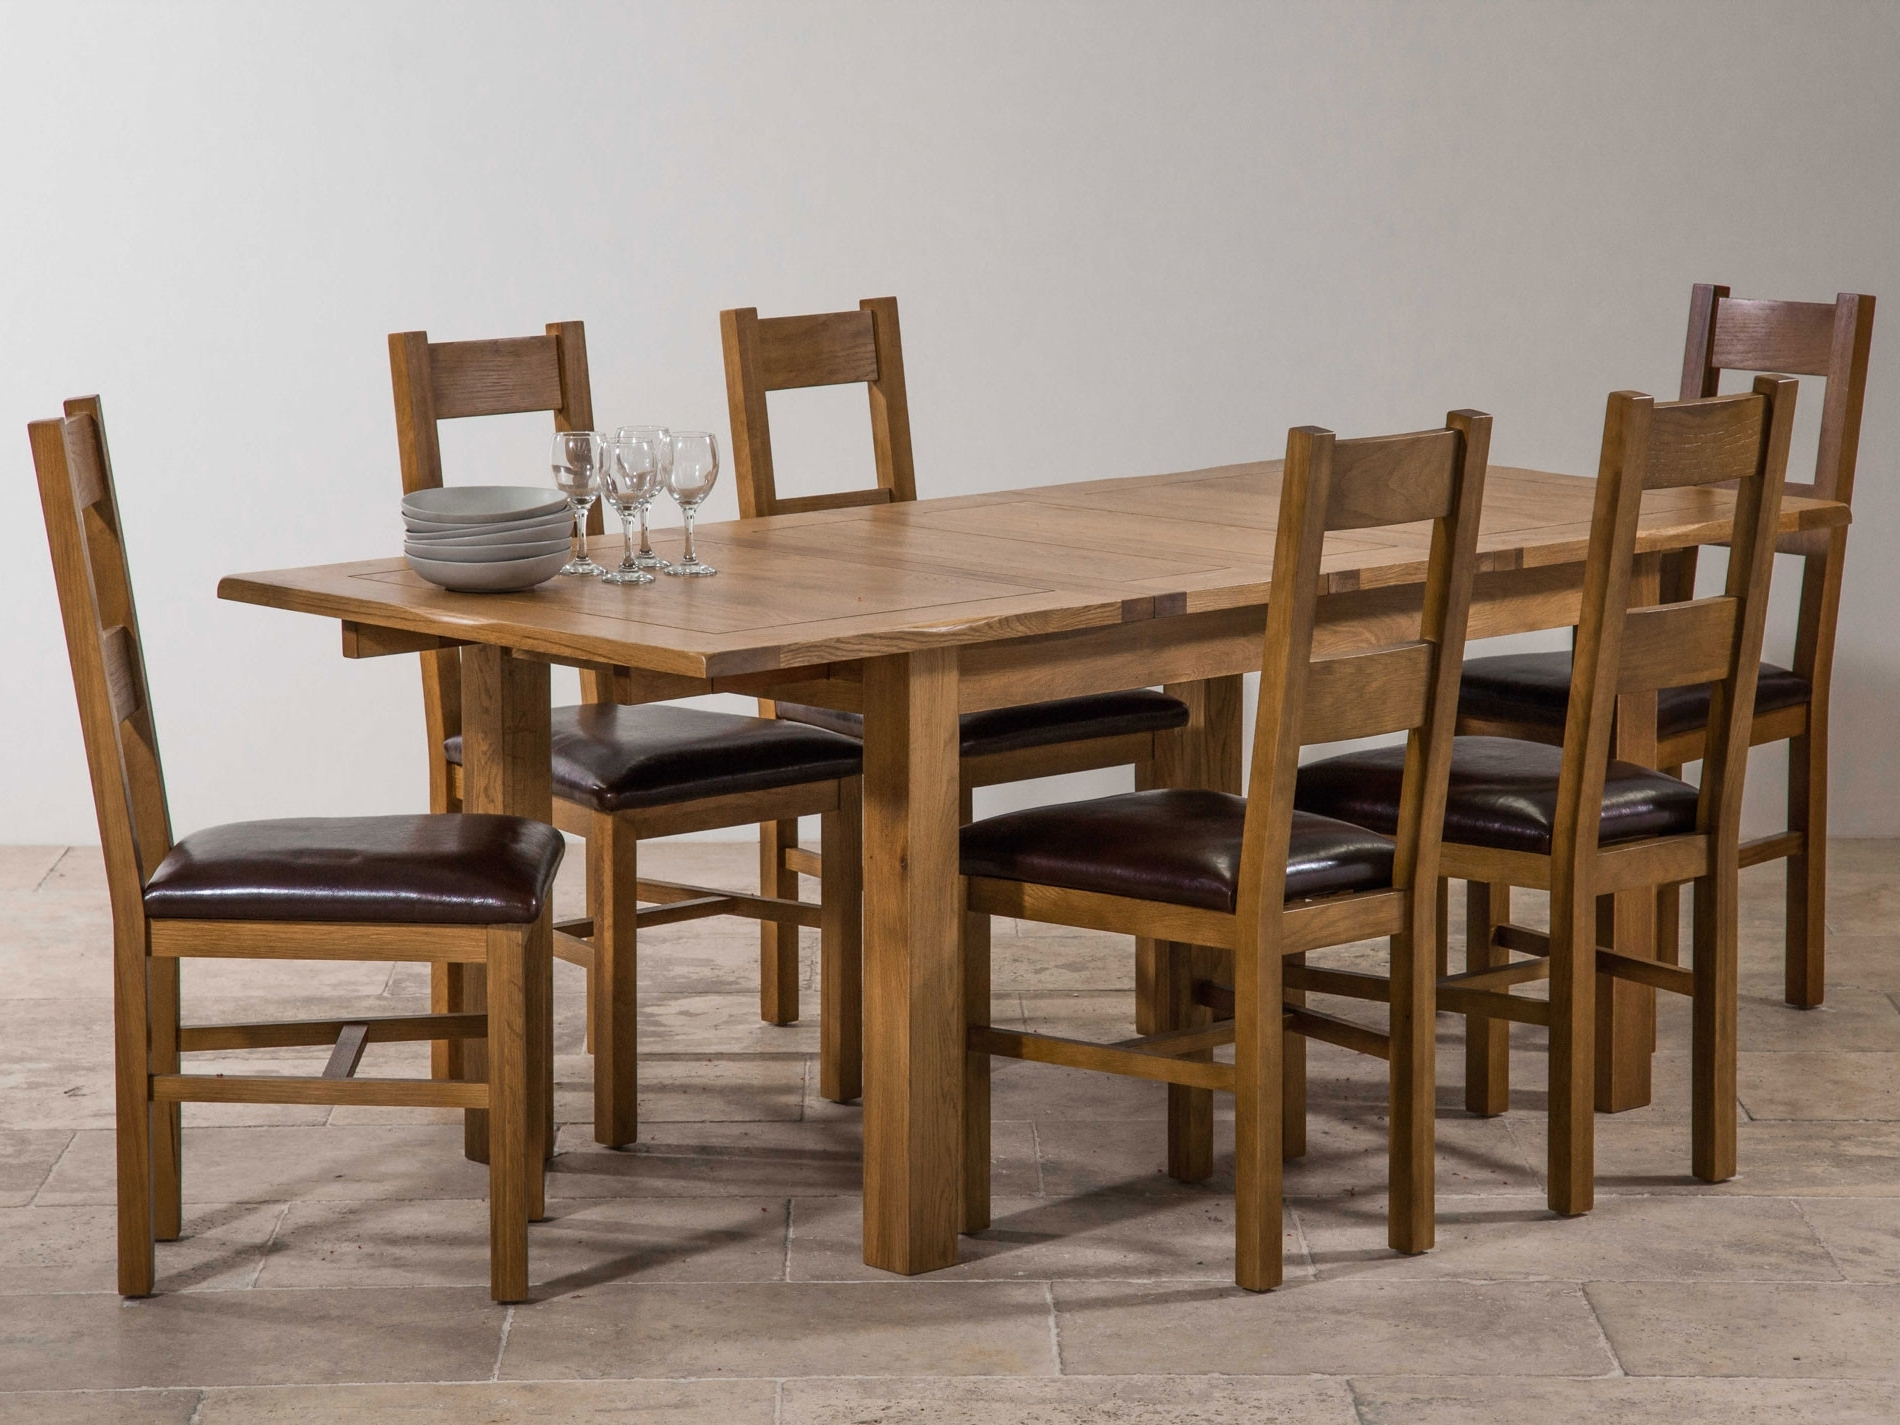 Extending Dining Tables Sets For Most Up To Date Enchanting Extendable Dining Table 3Ft Dining Table Sets On White (View 17 of 25)